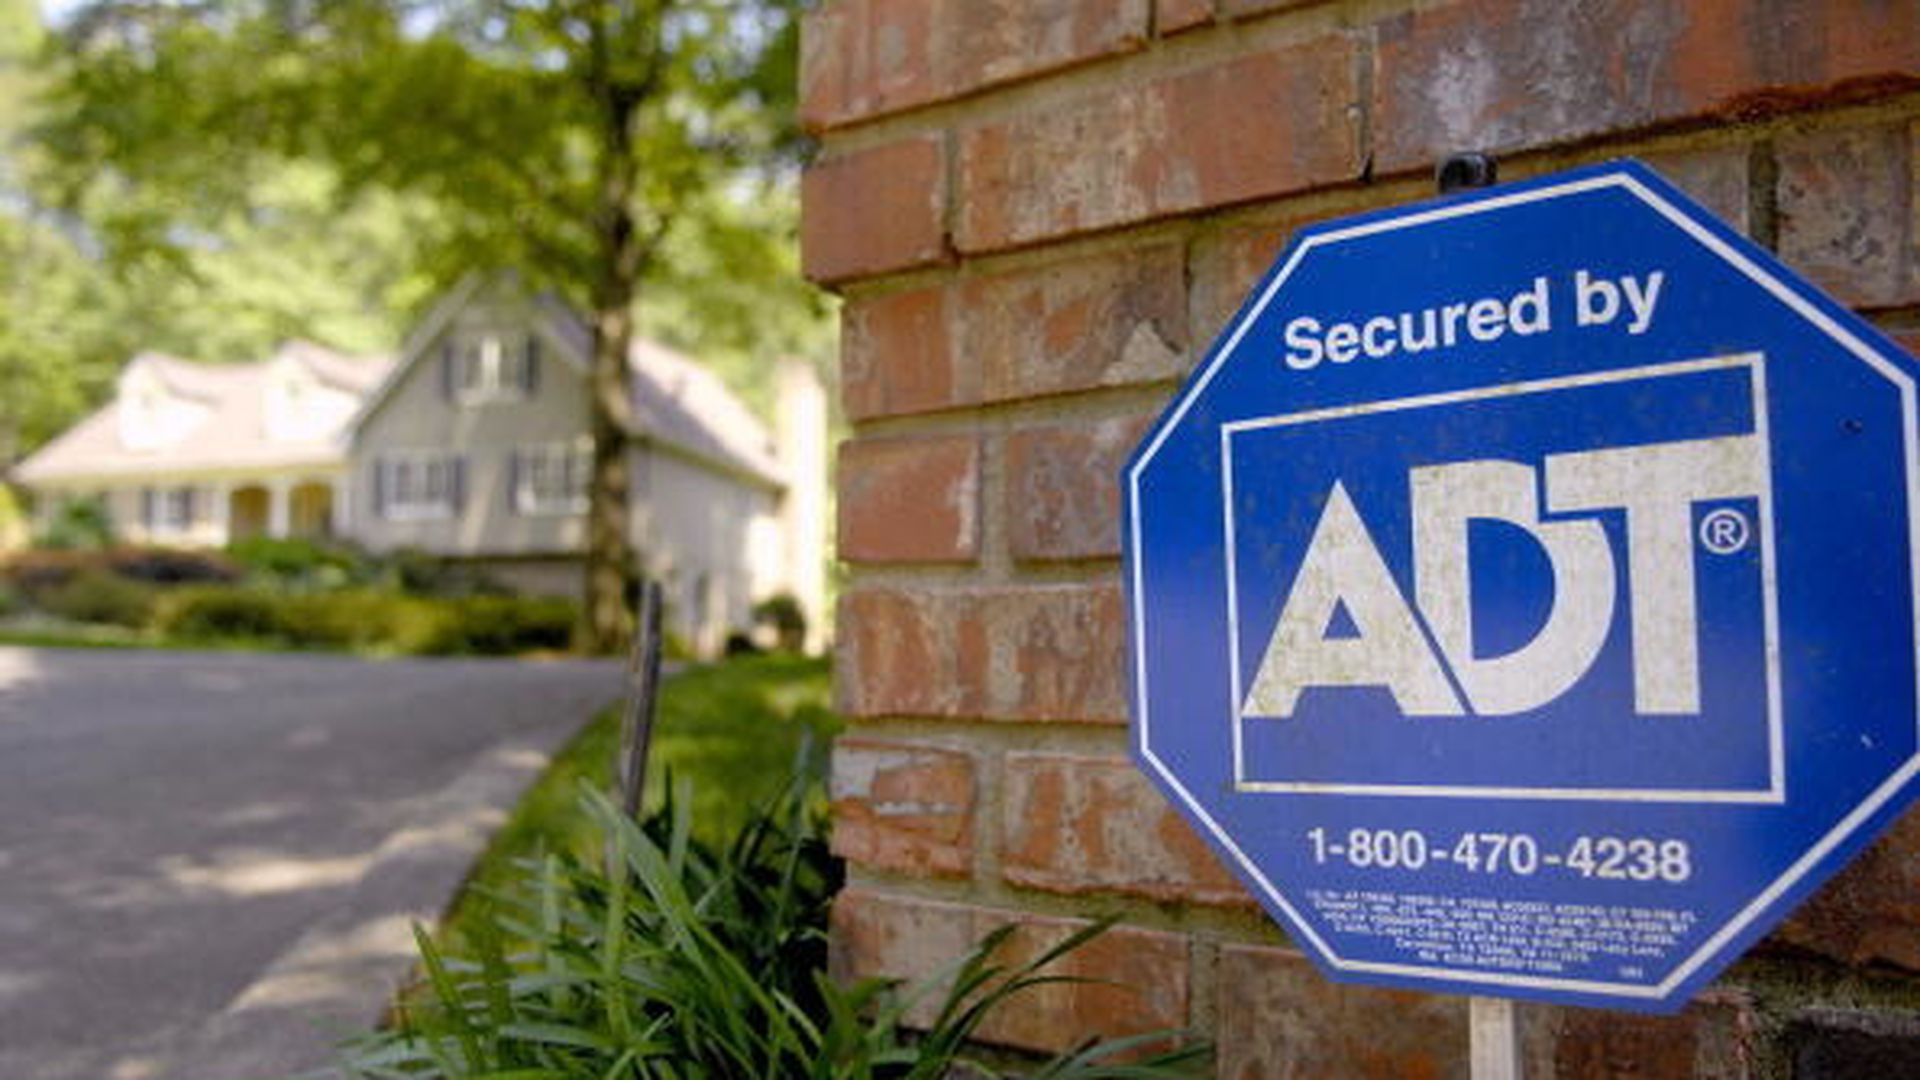 Home security firm ADT files for $100 million IPO